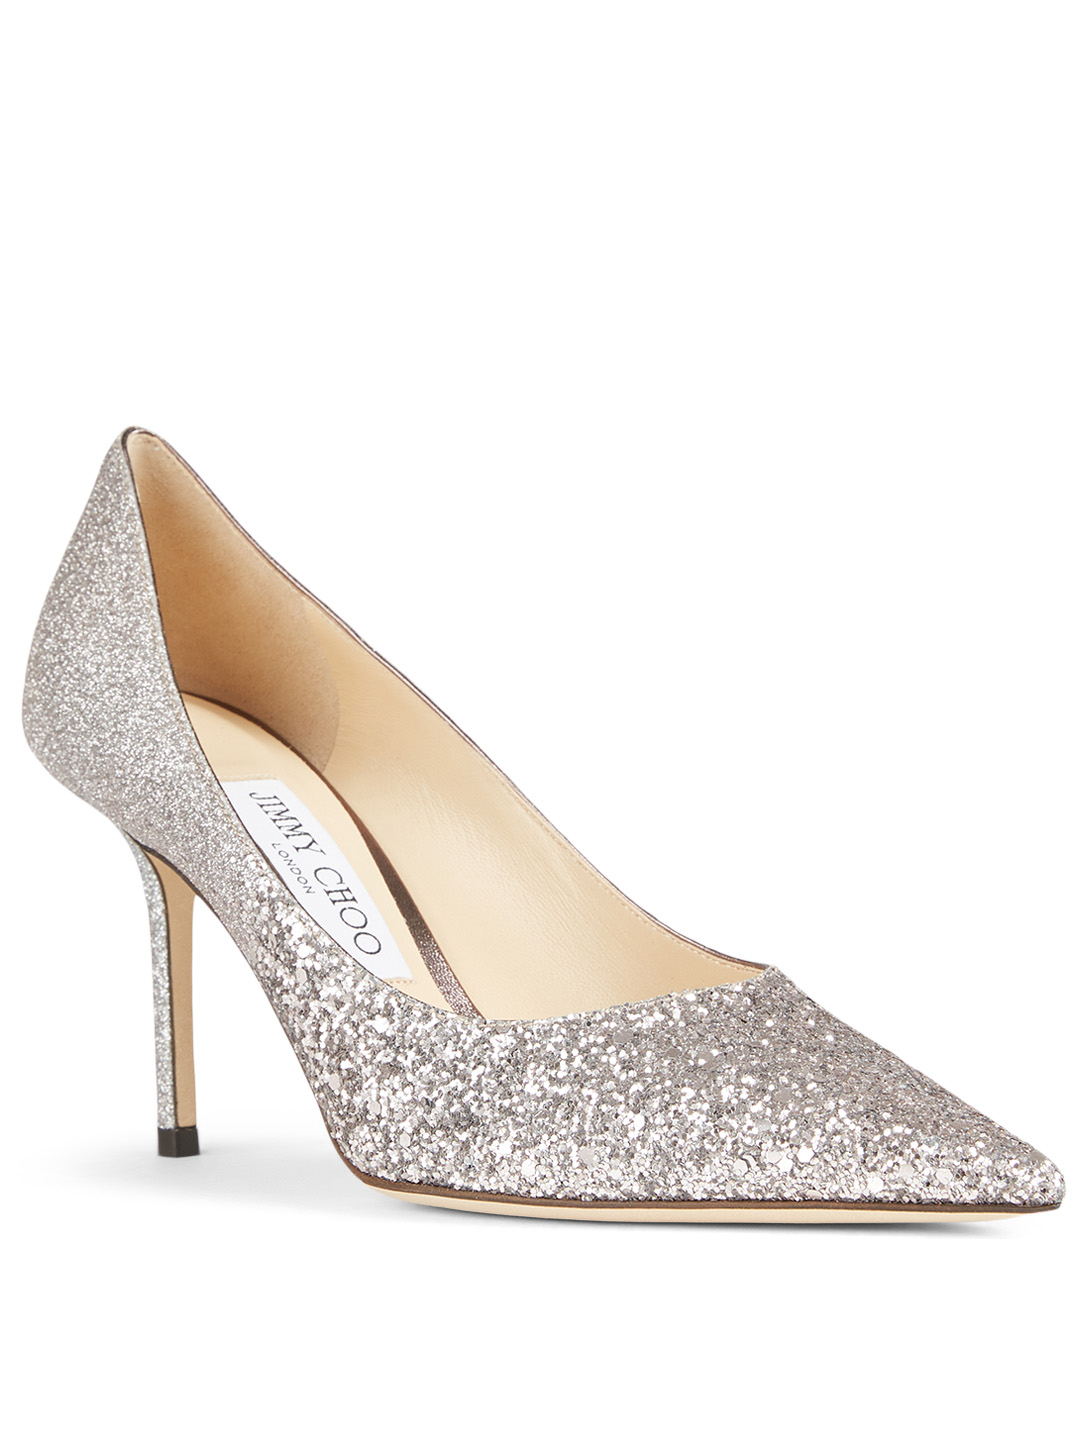 JIMMY CHOO Love 85 Glitter Dégradé Pumps Women's Purple